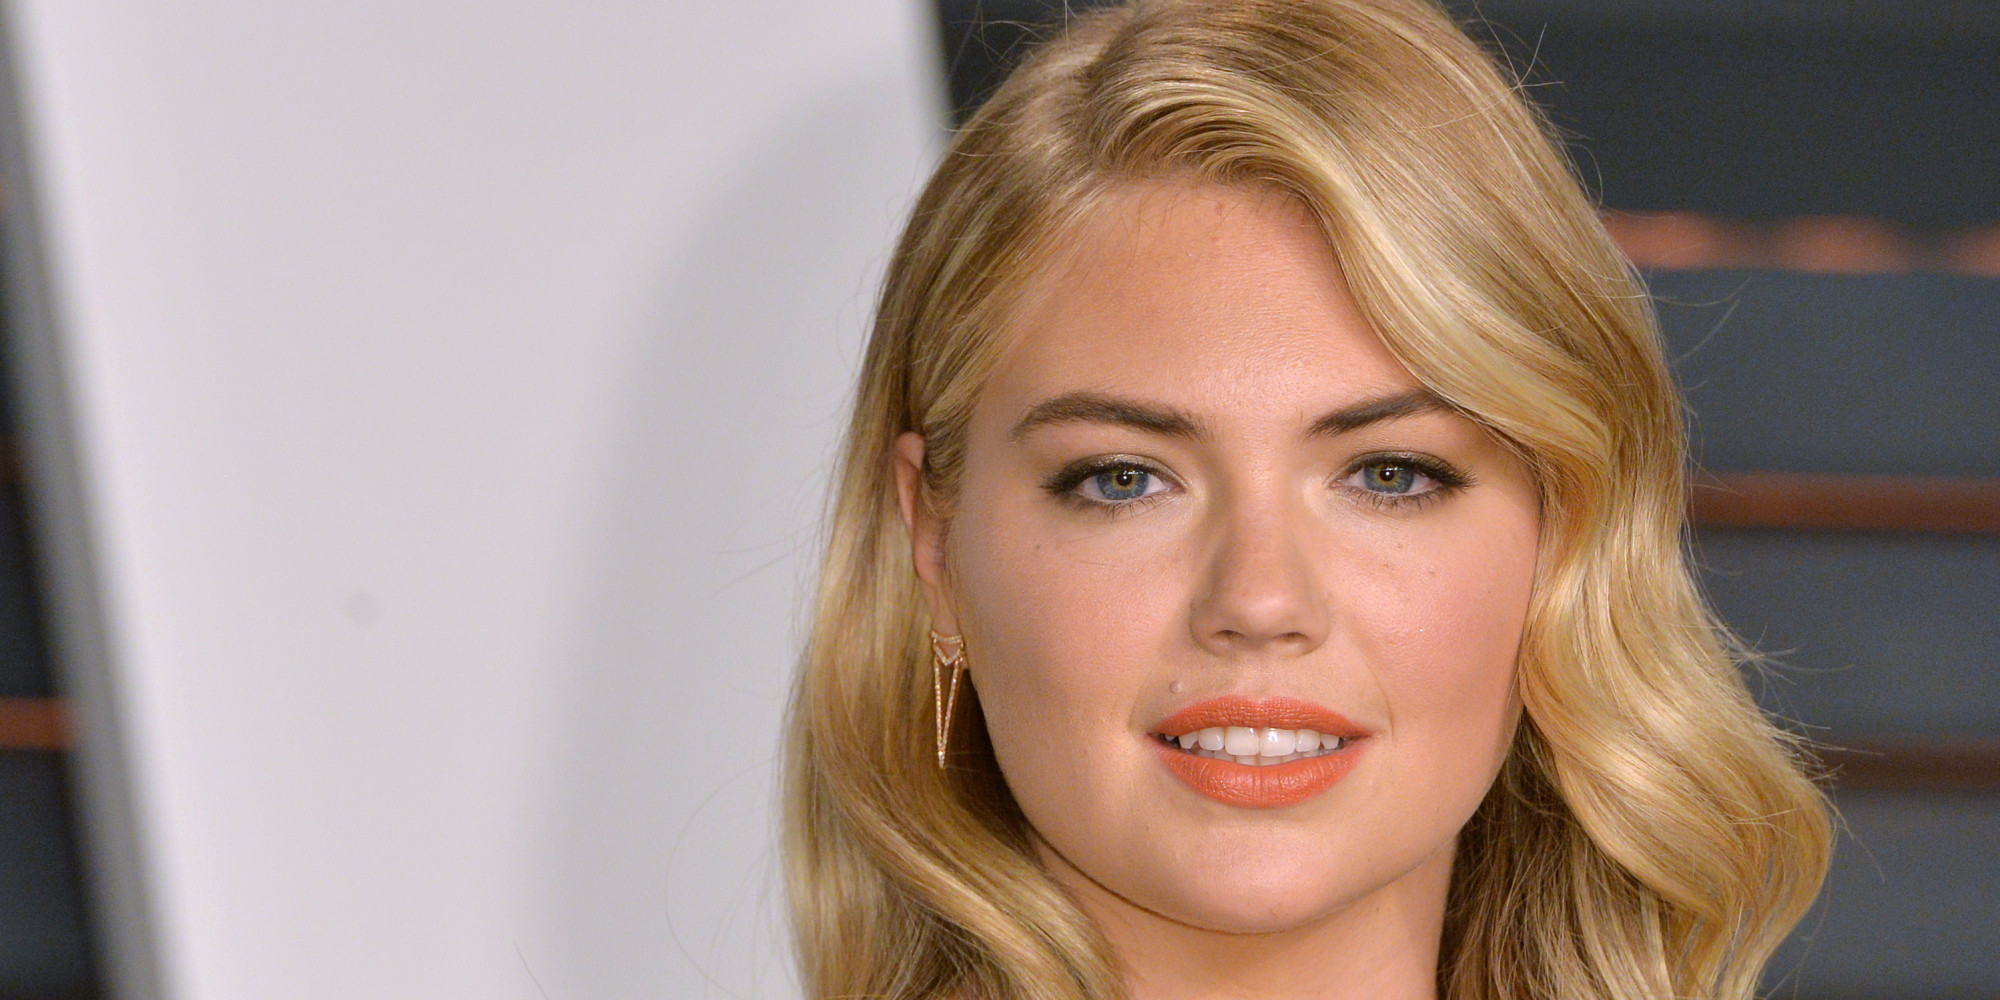 BEVERLY HILLS, CA - FEBRUARY 22:  Kate Upton arrives at the 2015 Vanity Fair Oscar Party Hosted By Graydon Carter at Wallis Annenberg Center for the Performing Arts on February 22, 2015 in Beverly Hills, California.  (Photo by Anthony Harvey/Getty Images)